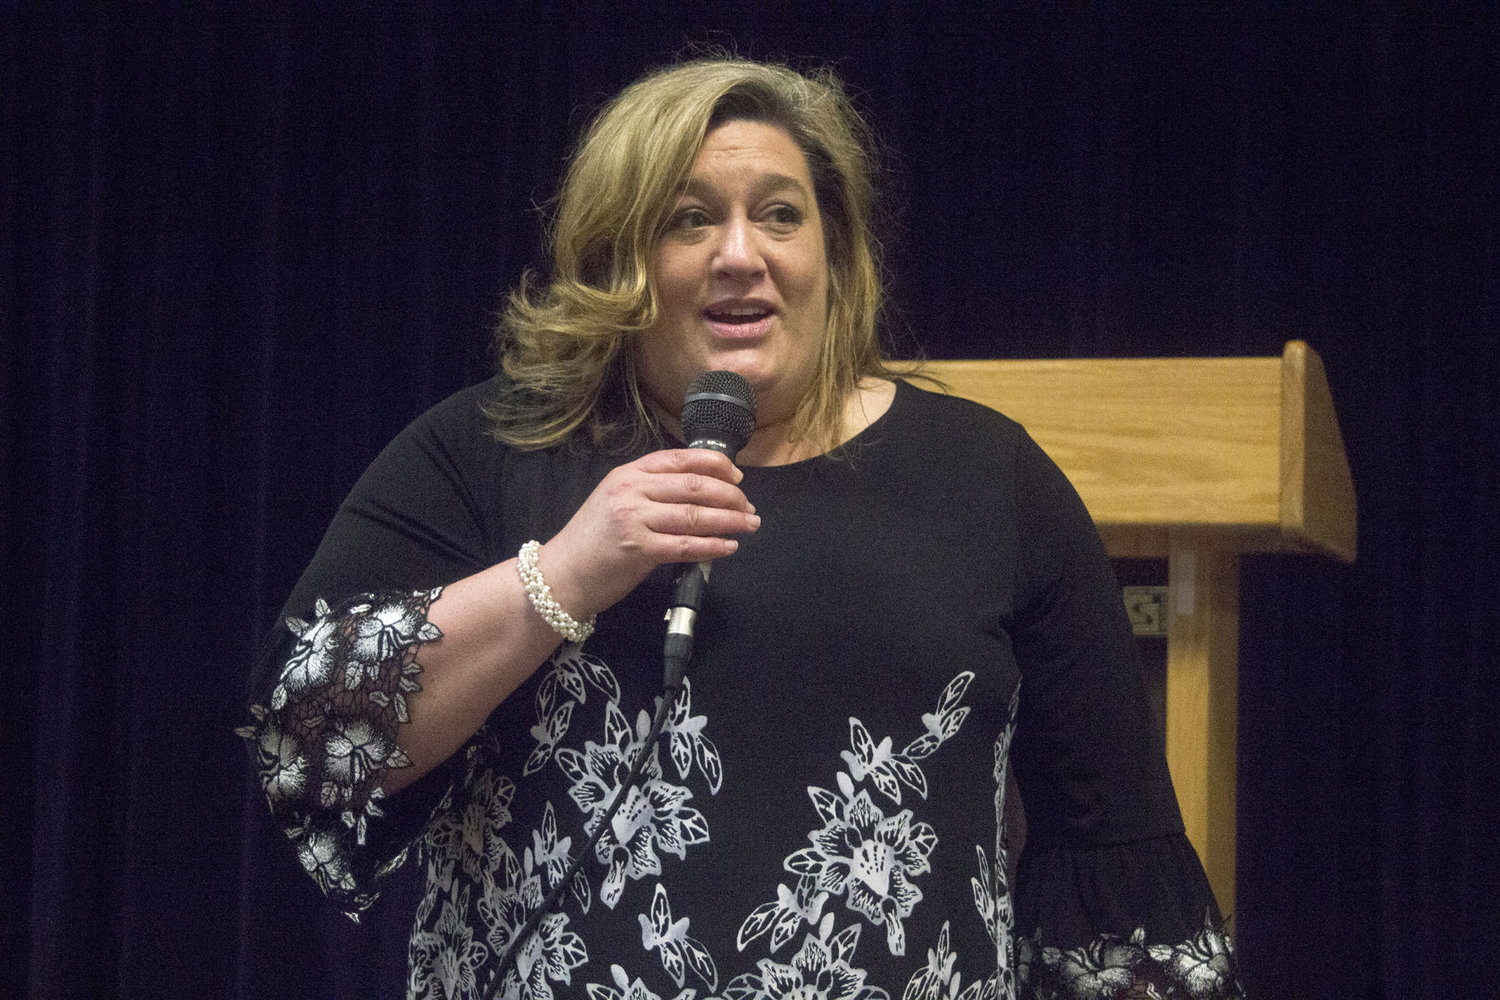 Kristi Queen, a former assistant principal Shorecrest High School and the Mukilteo Explorer Middle School in Everett, speaks to parents and community members at Blue Heron Middle School June 22.